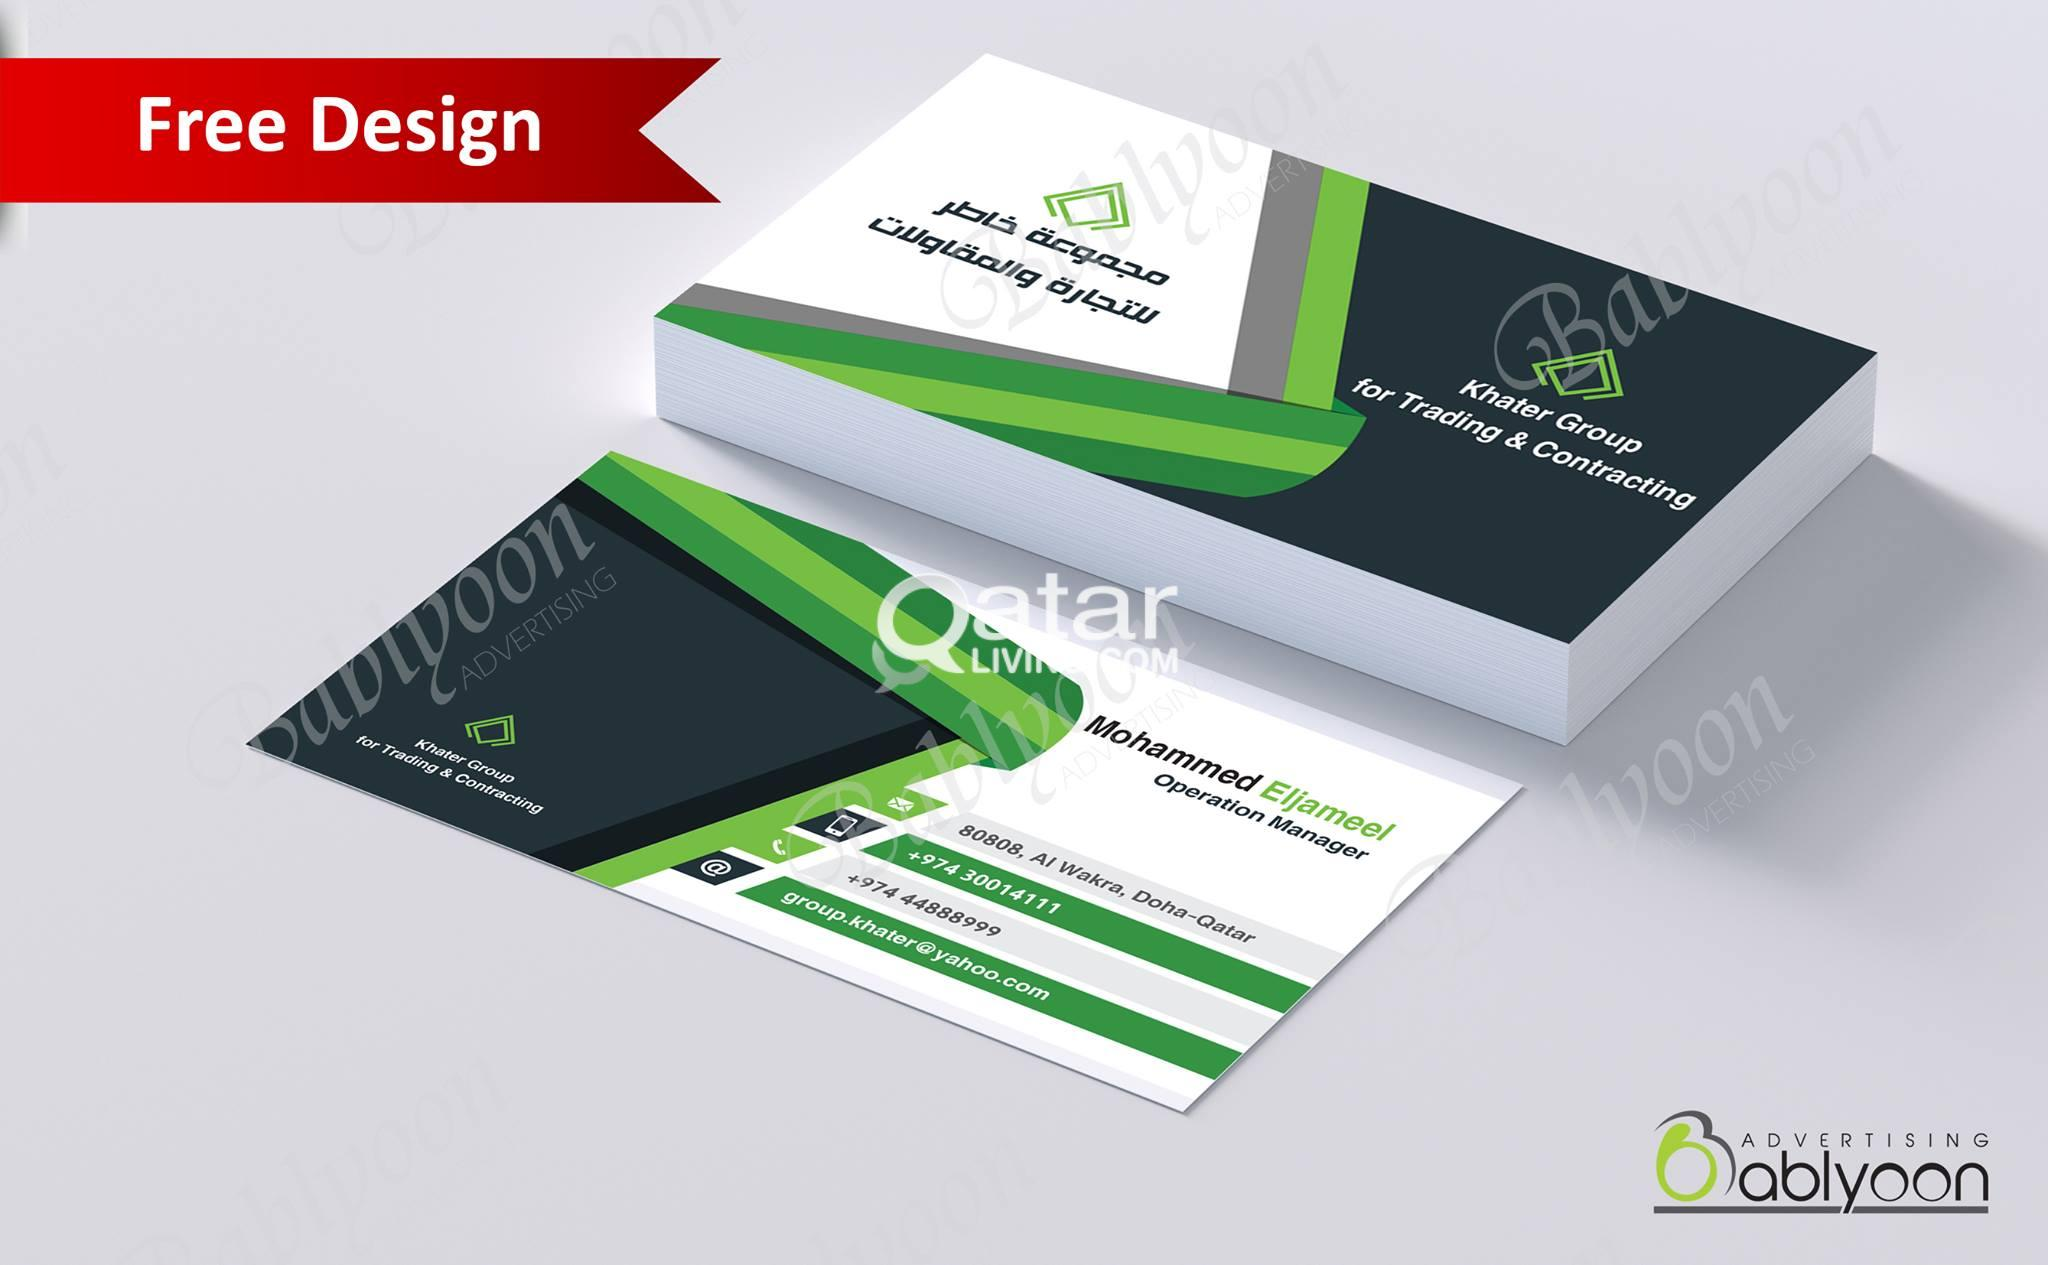 Business card printing within 15 minutes qatar living title title reheart Image collections